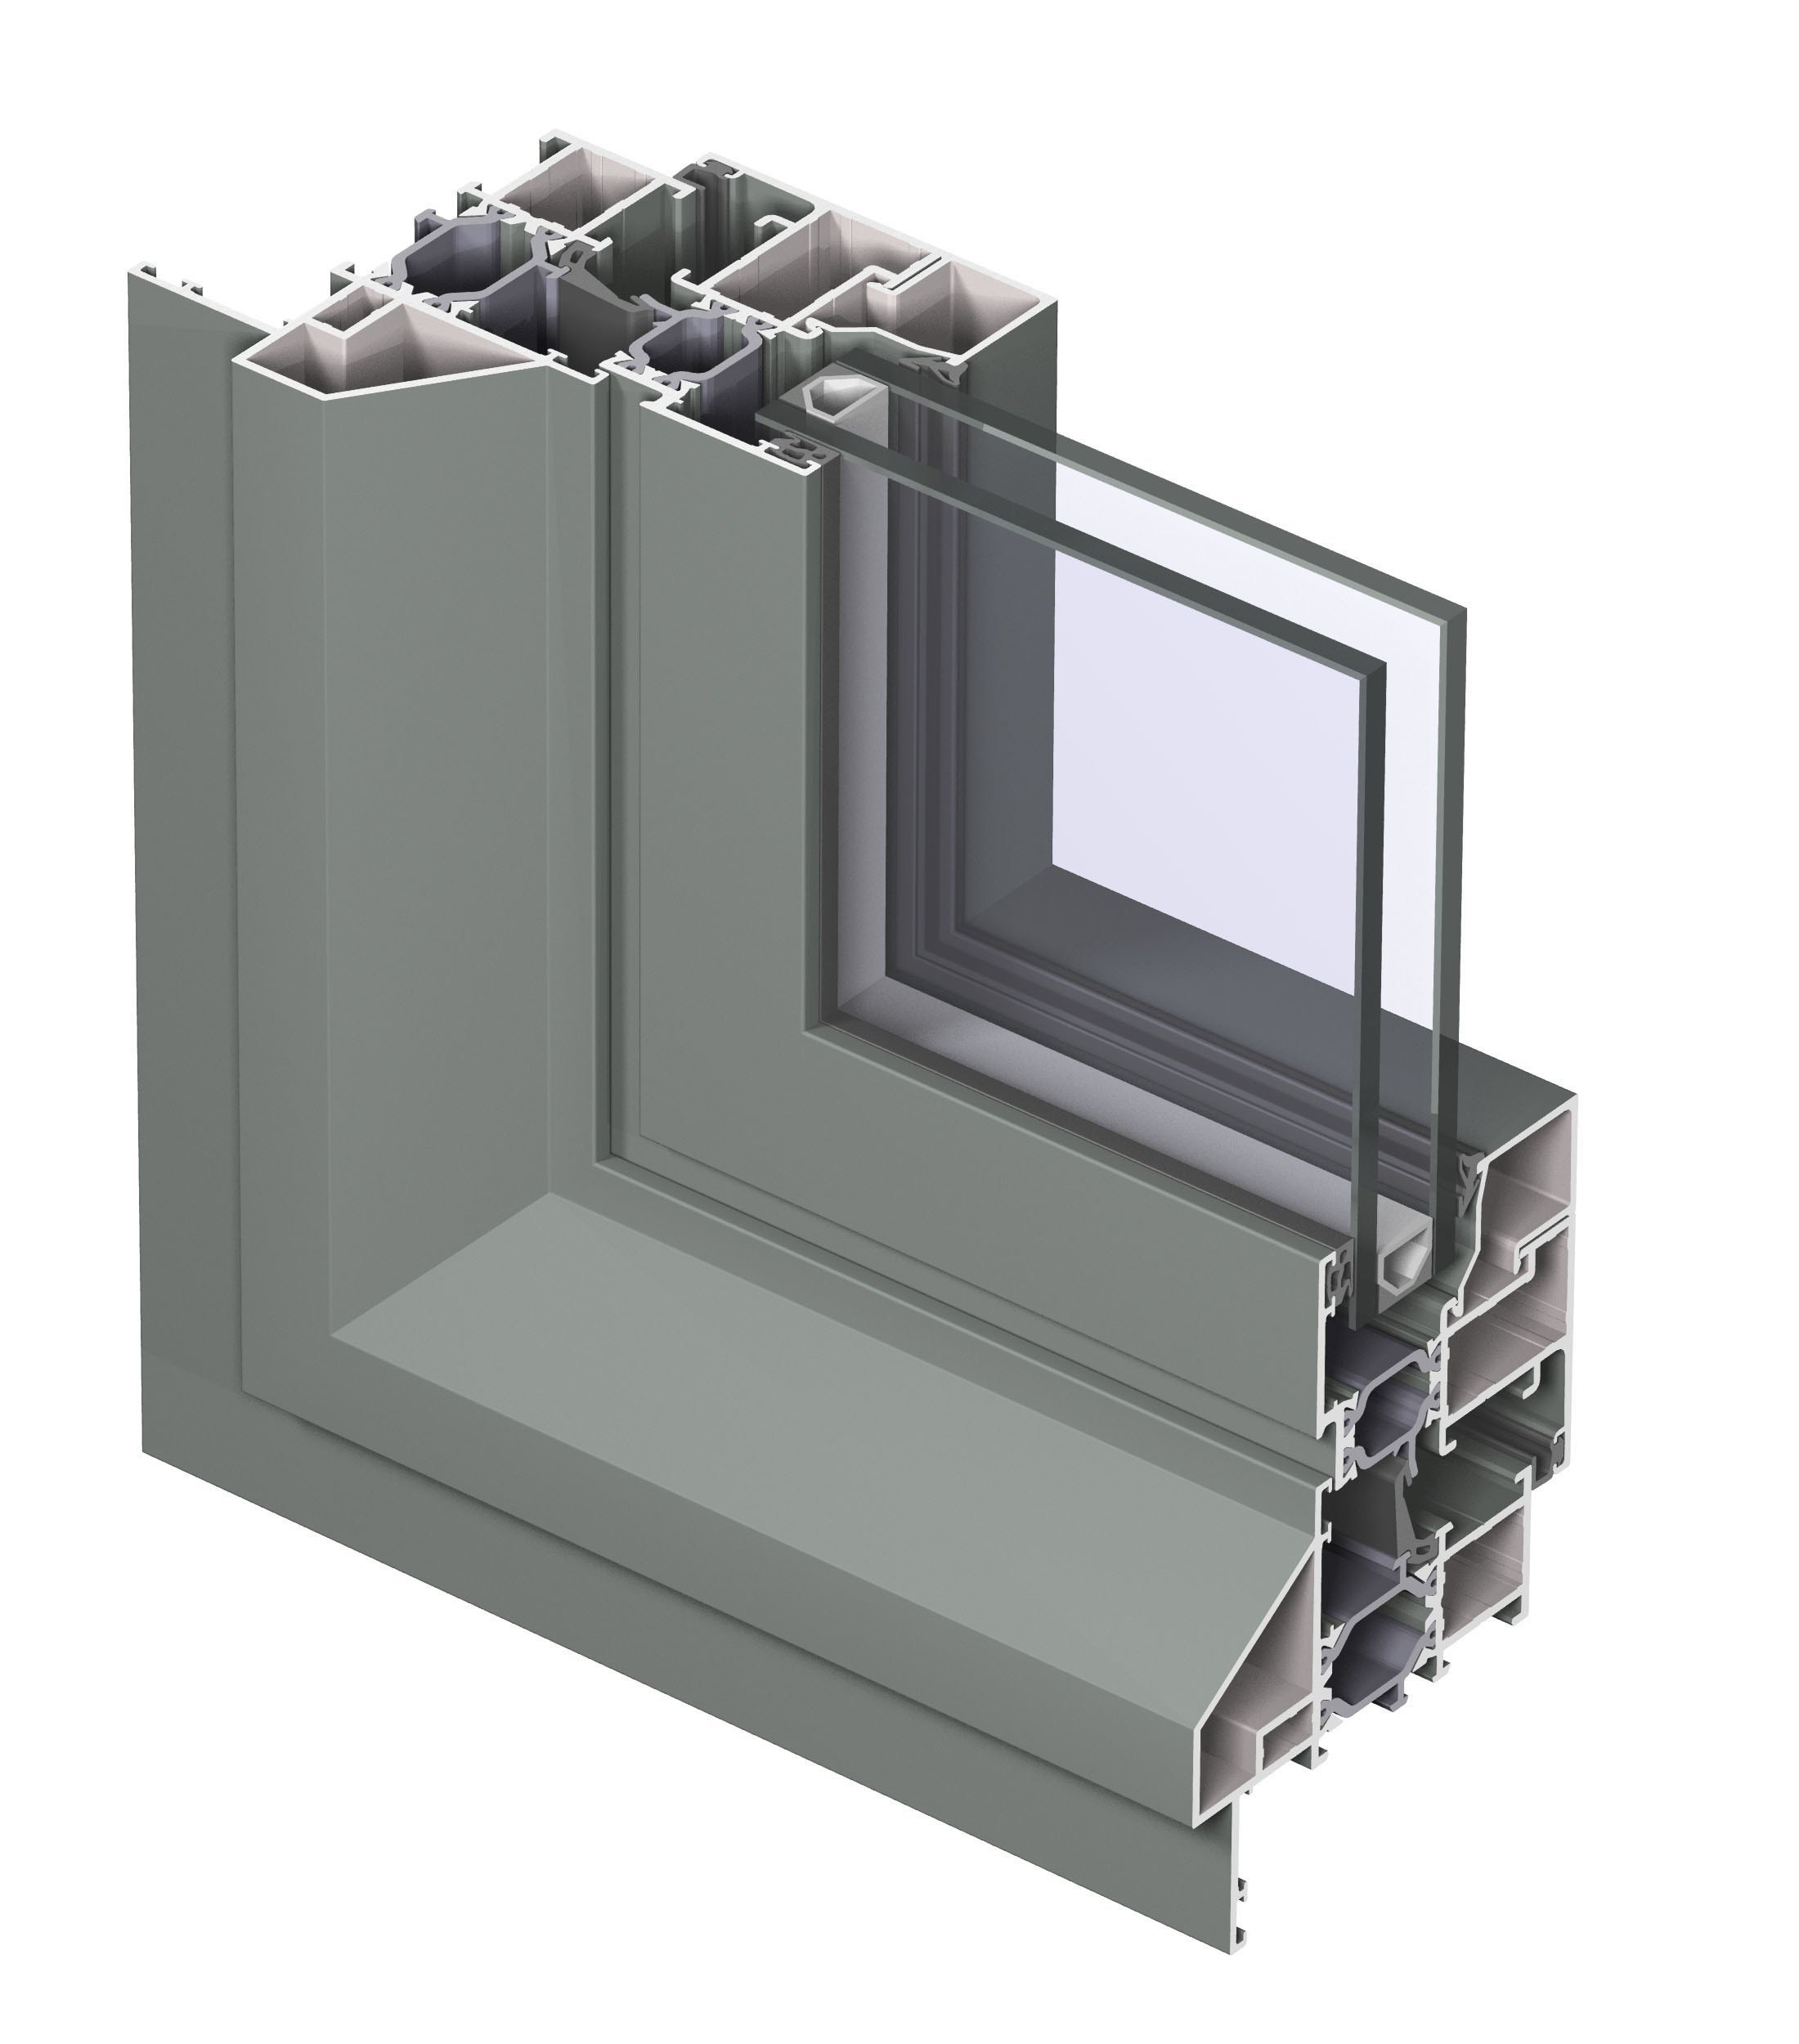 Aluminium thermal break window eco system 50 by reynaers for Thermal windows